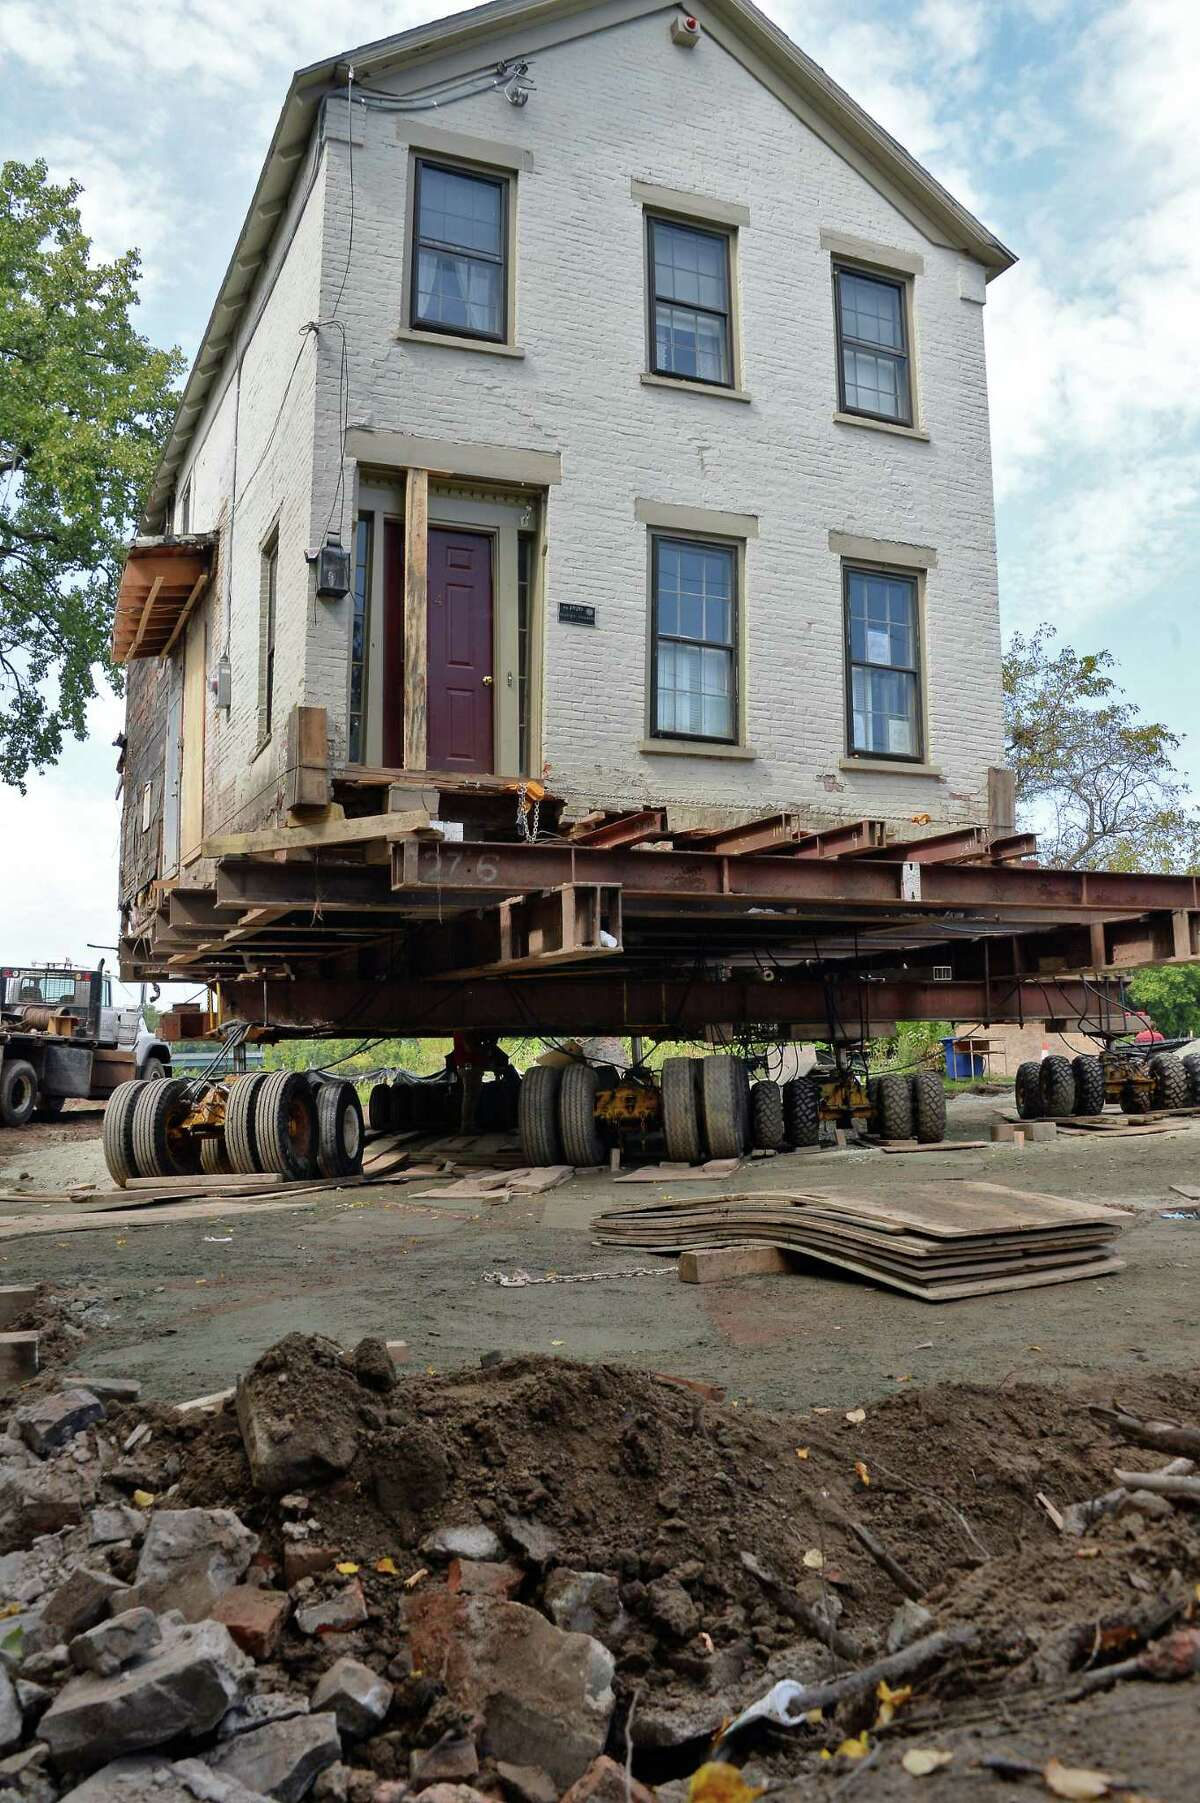 This historic 1820 Stockade home is raised up and moved back out of the flood plain Wednesday Sept. 13, 2017 in Schenectady, NY. (John Carl D'Annibale / Times Union)